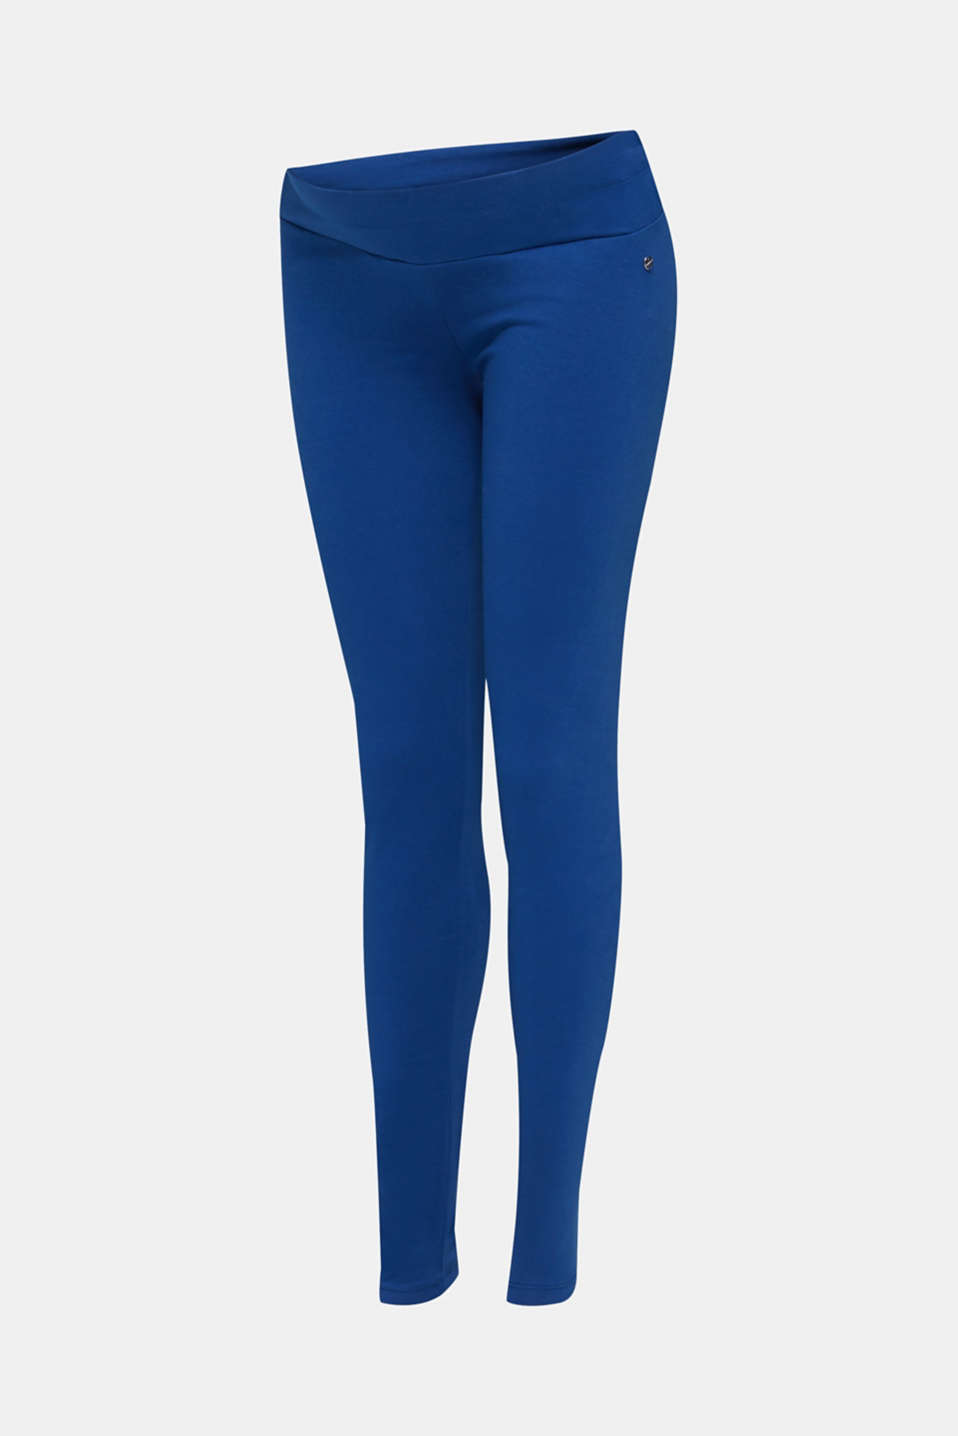 Leggings with an under-bump waistband, LCBRIGHT BLUE, detail image number 2